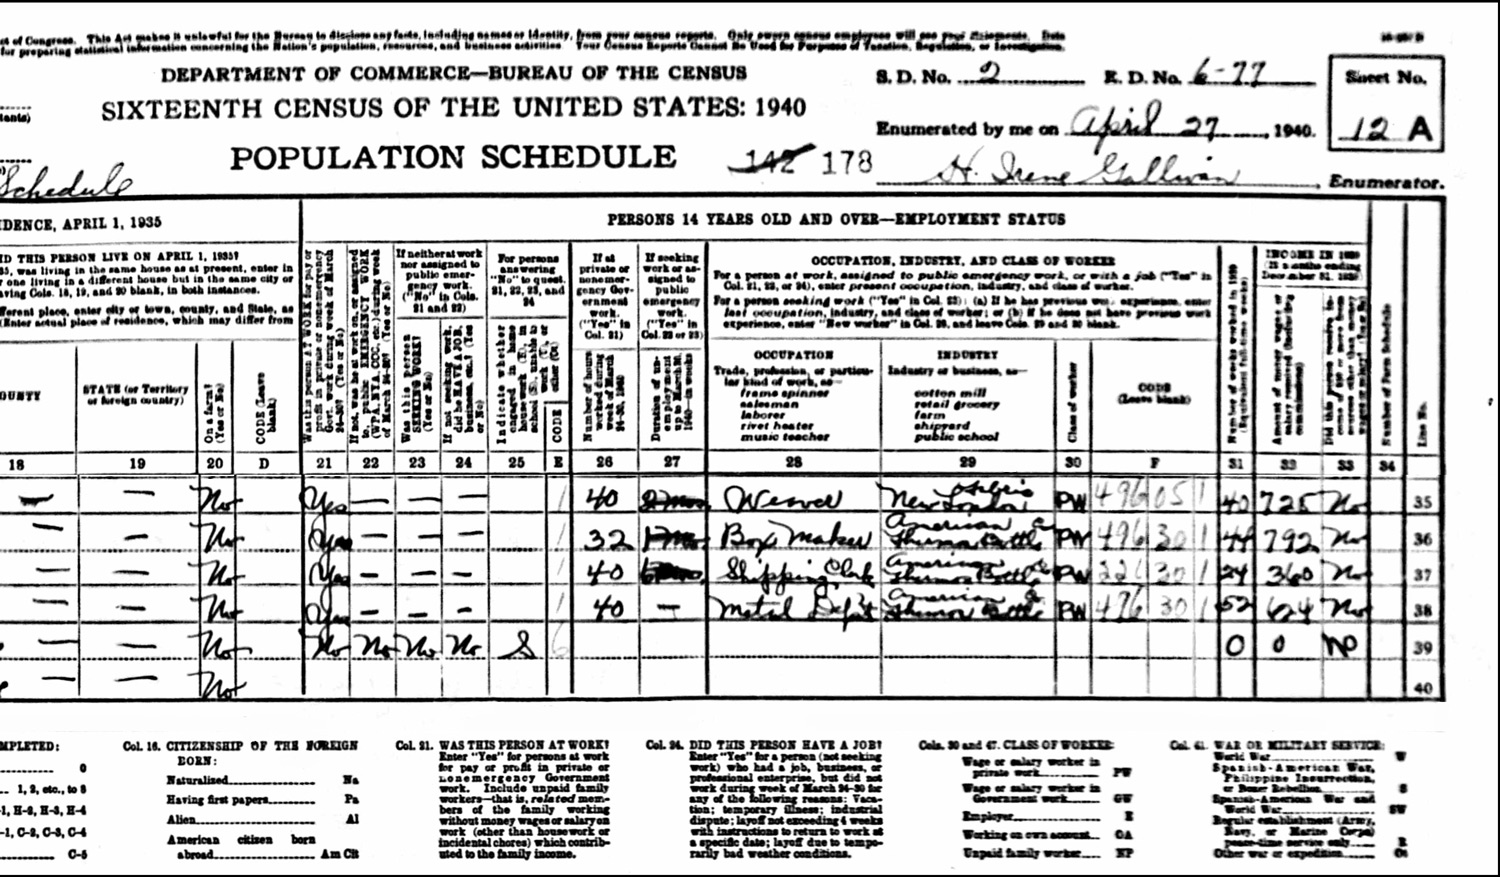 1940 US Federal Census Record for the John Janik Househ